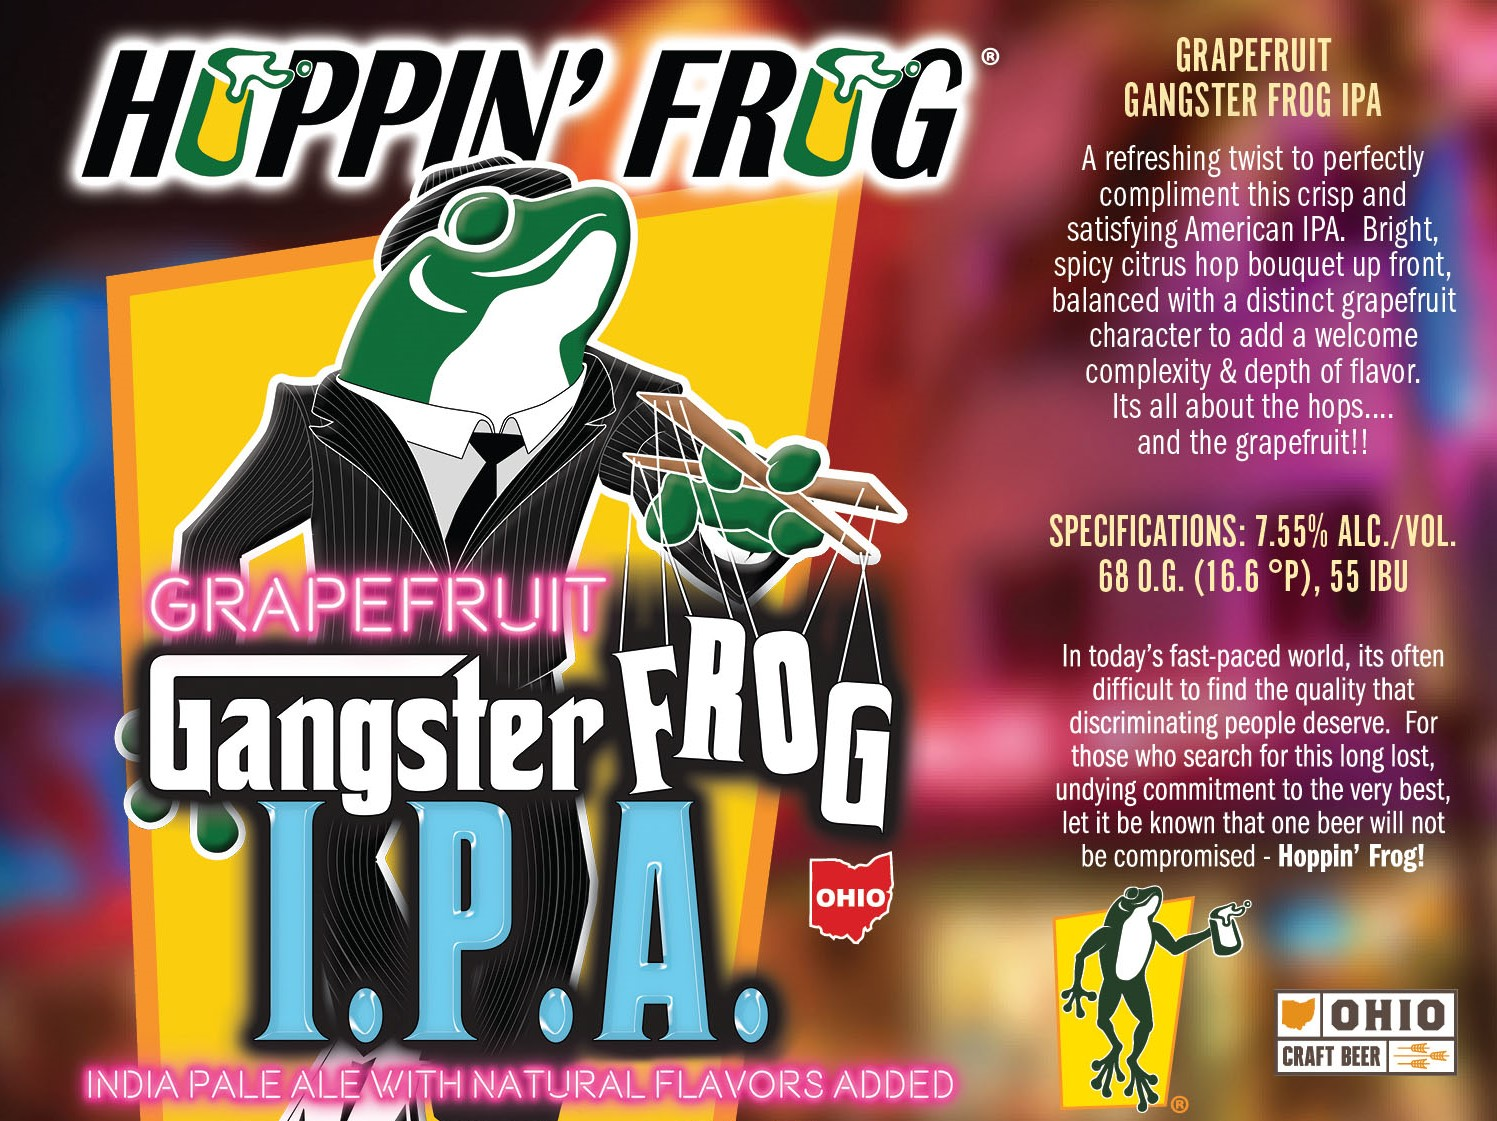 Gangster Frog IPA